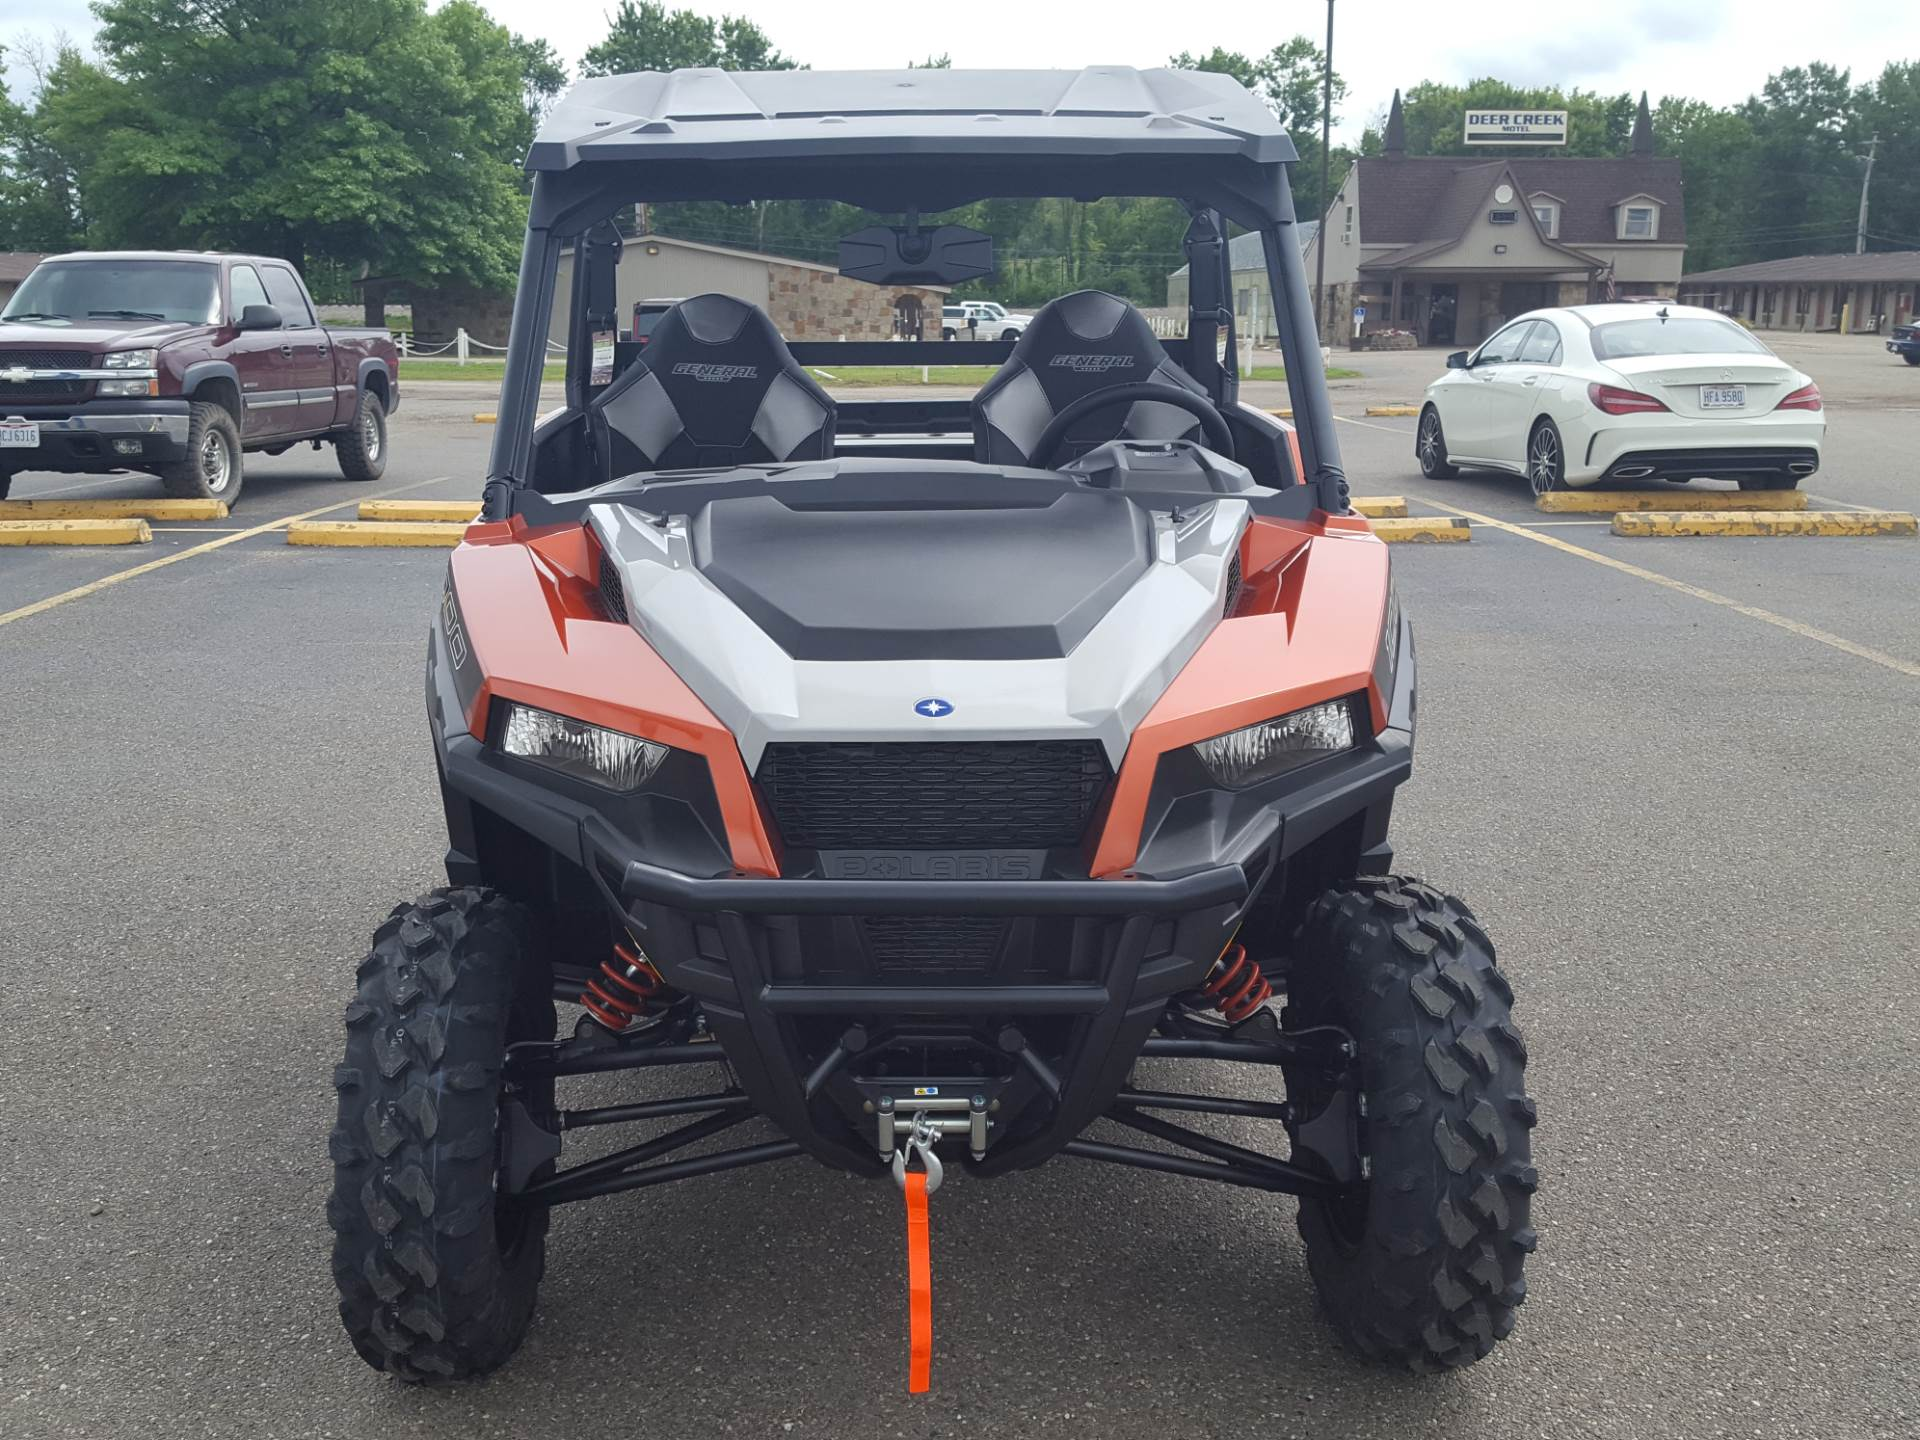 2019 Polaris General 1000 EPS Deluxe in Cambridge, Ohio - Photo 3